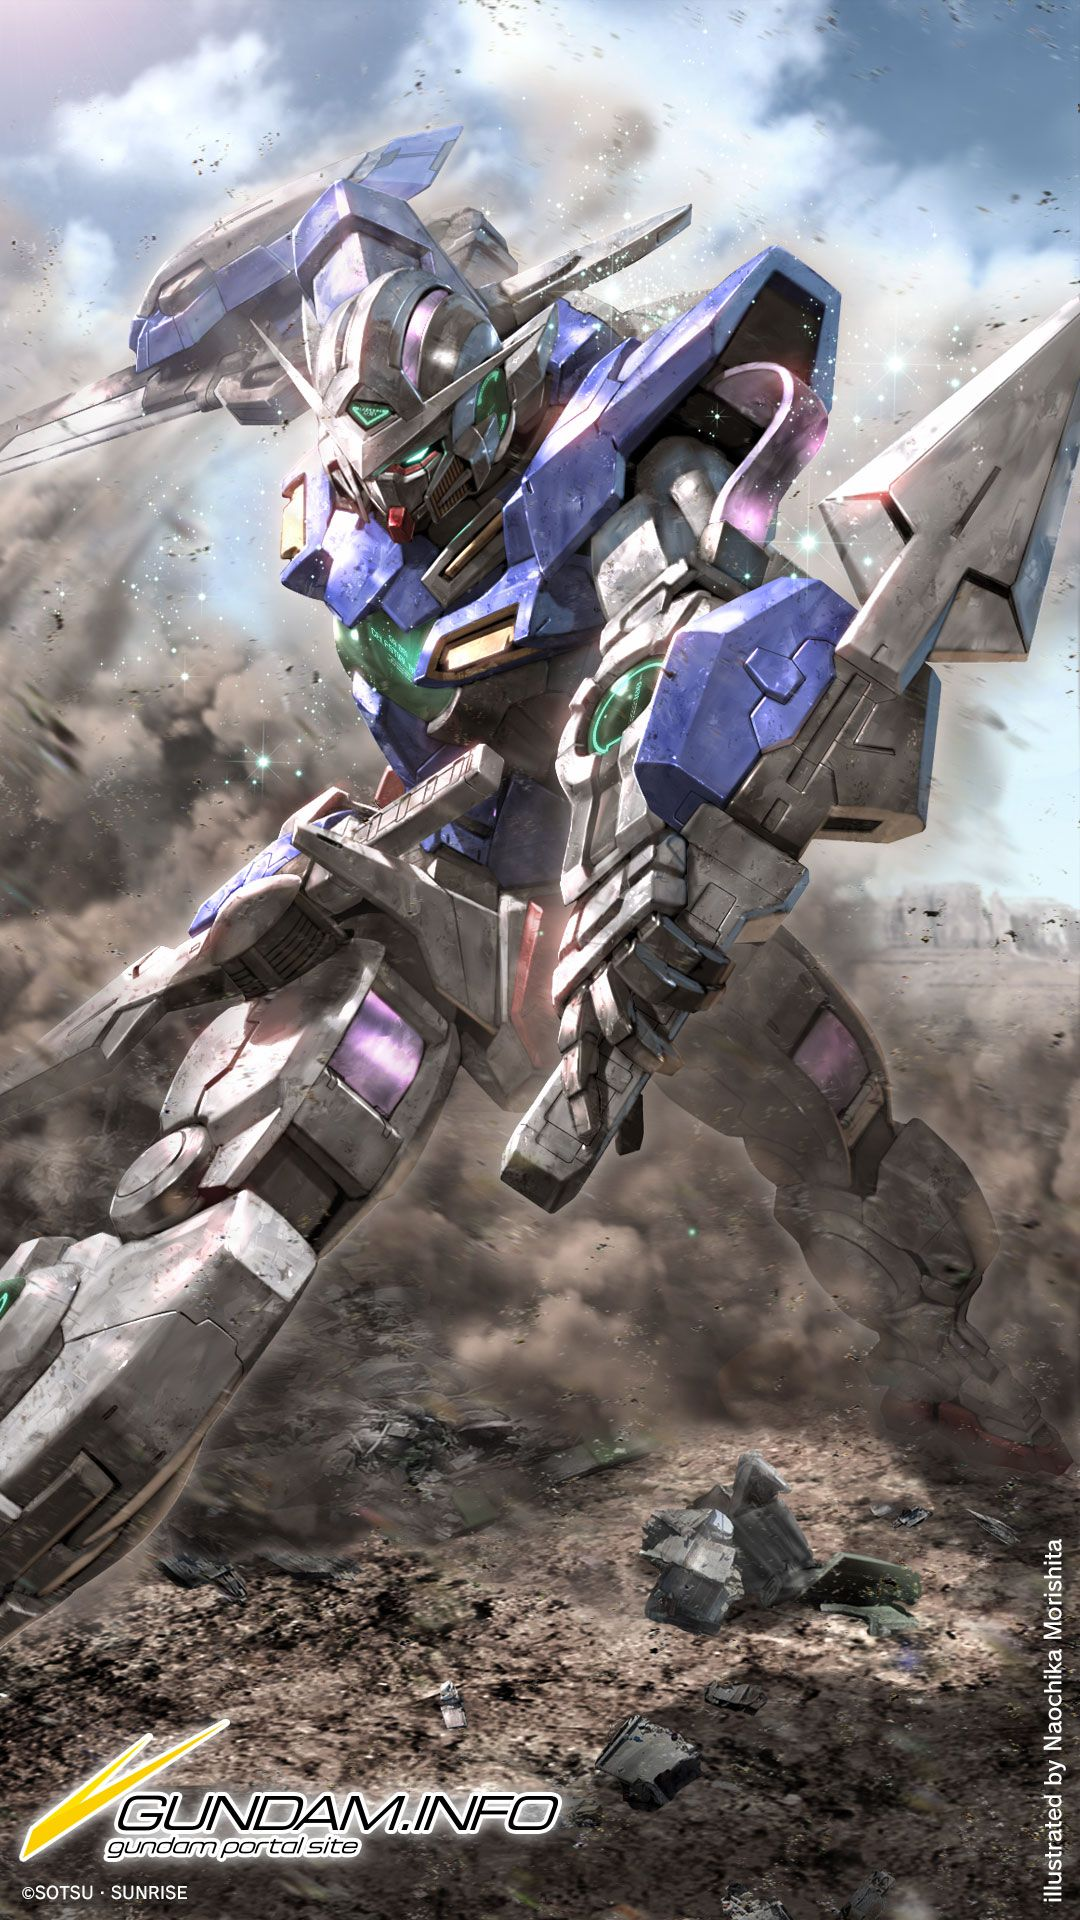 Gundam Info Exia Wallpaper Gundam Art Gundam Wallpapers Gundam Exia